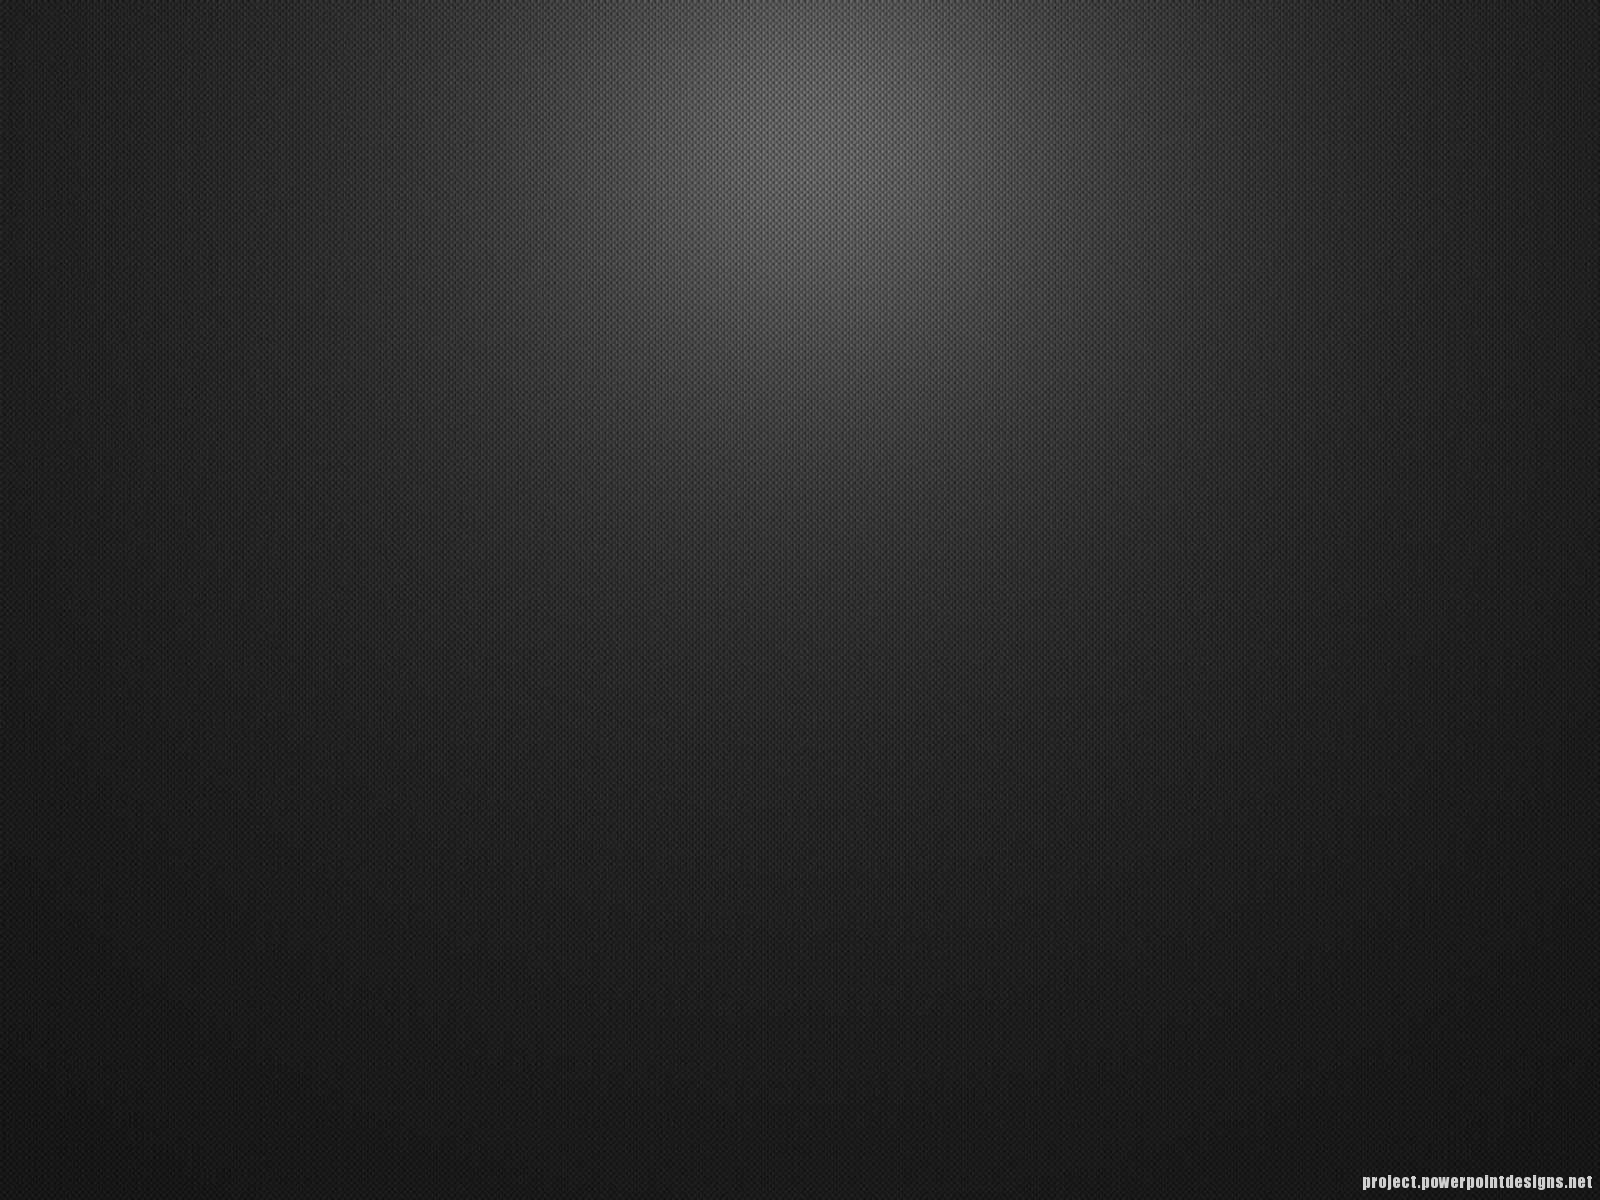 black-carbon-texture-powerpoint-background